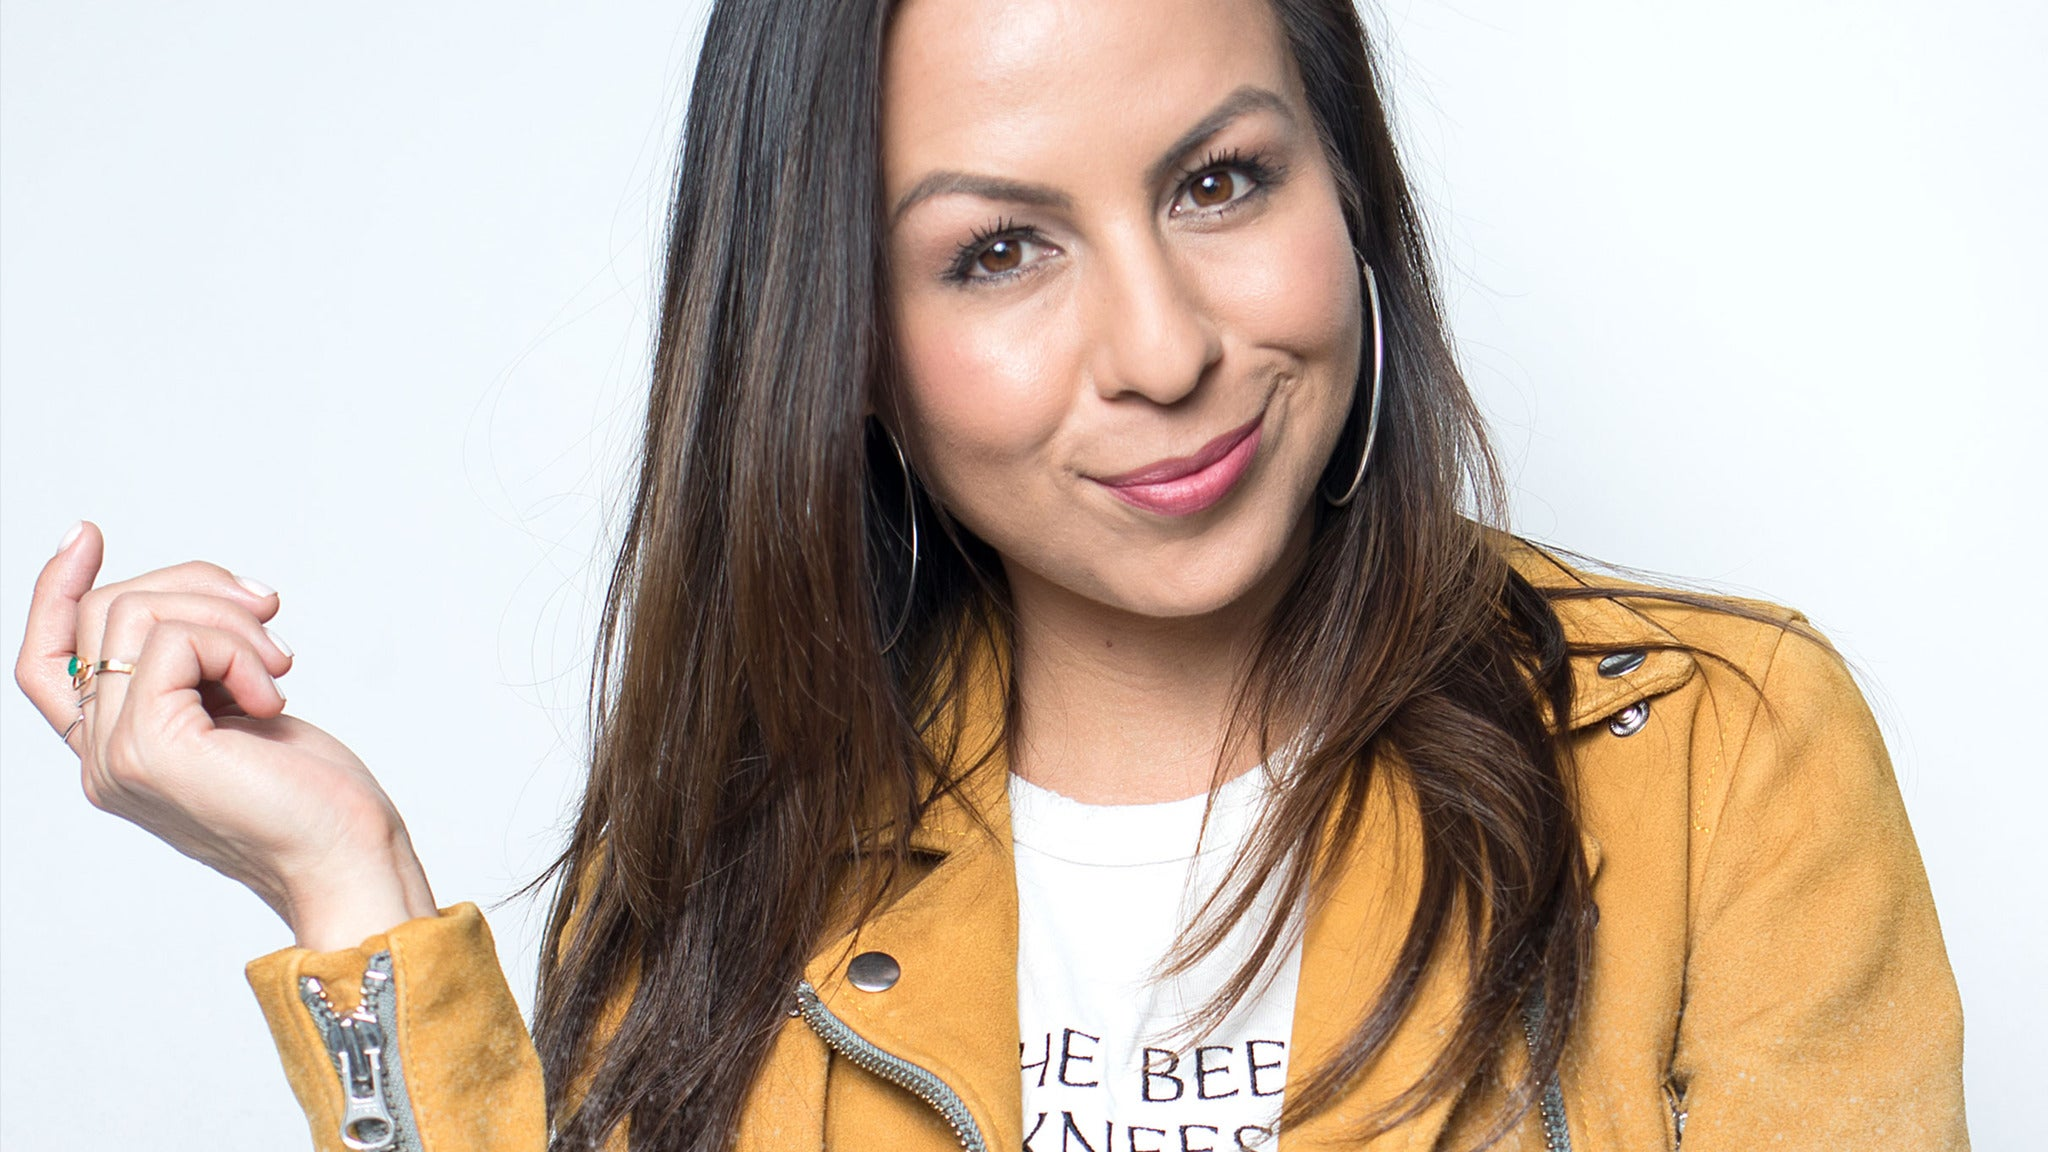 Anjelah Johnson: Technically Not Stalking